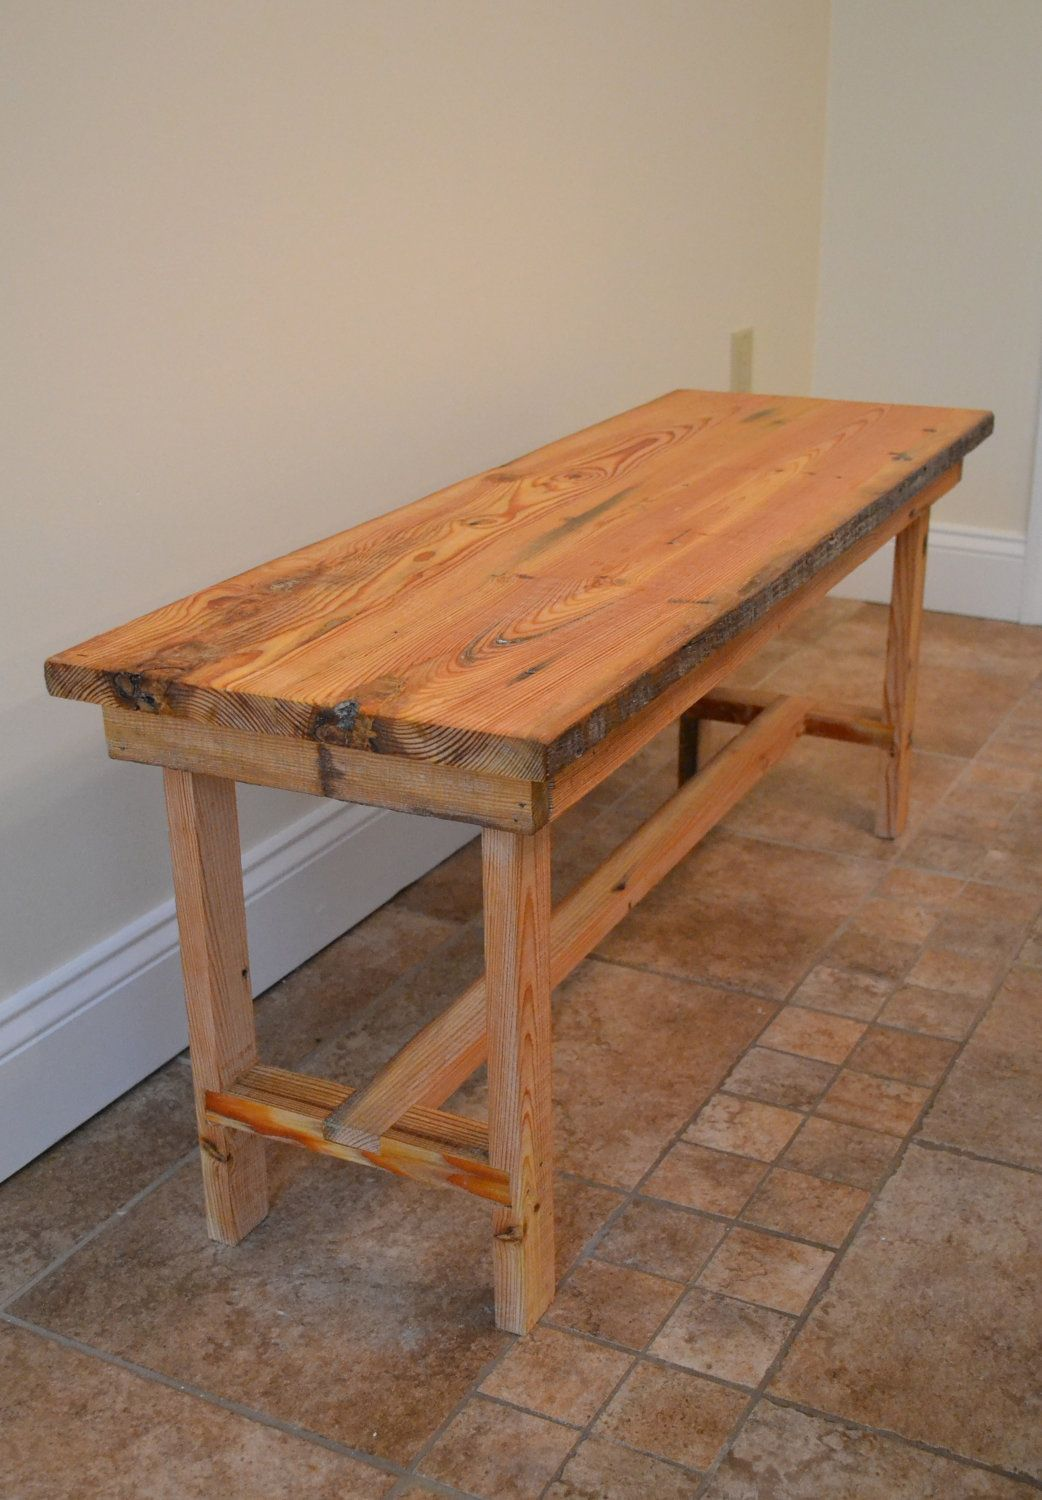 Reclaimed Wood Bench Reclaimed Wood Furniture Free